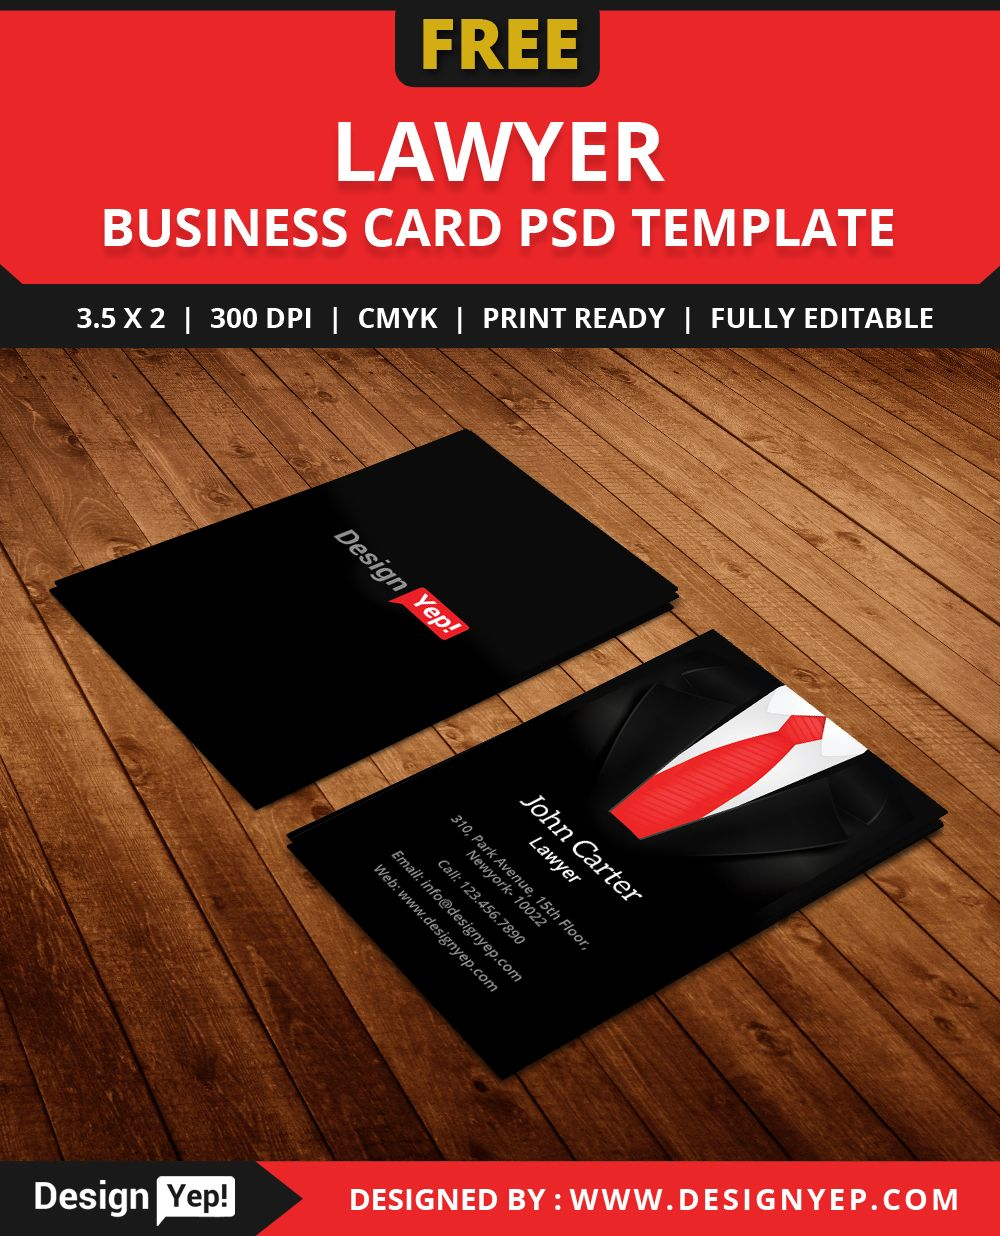 FreeLawyerBusinessCardTemplatePSD Free Business Card - Lawyer business card templates